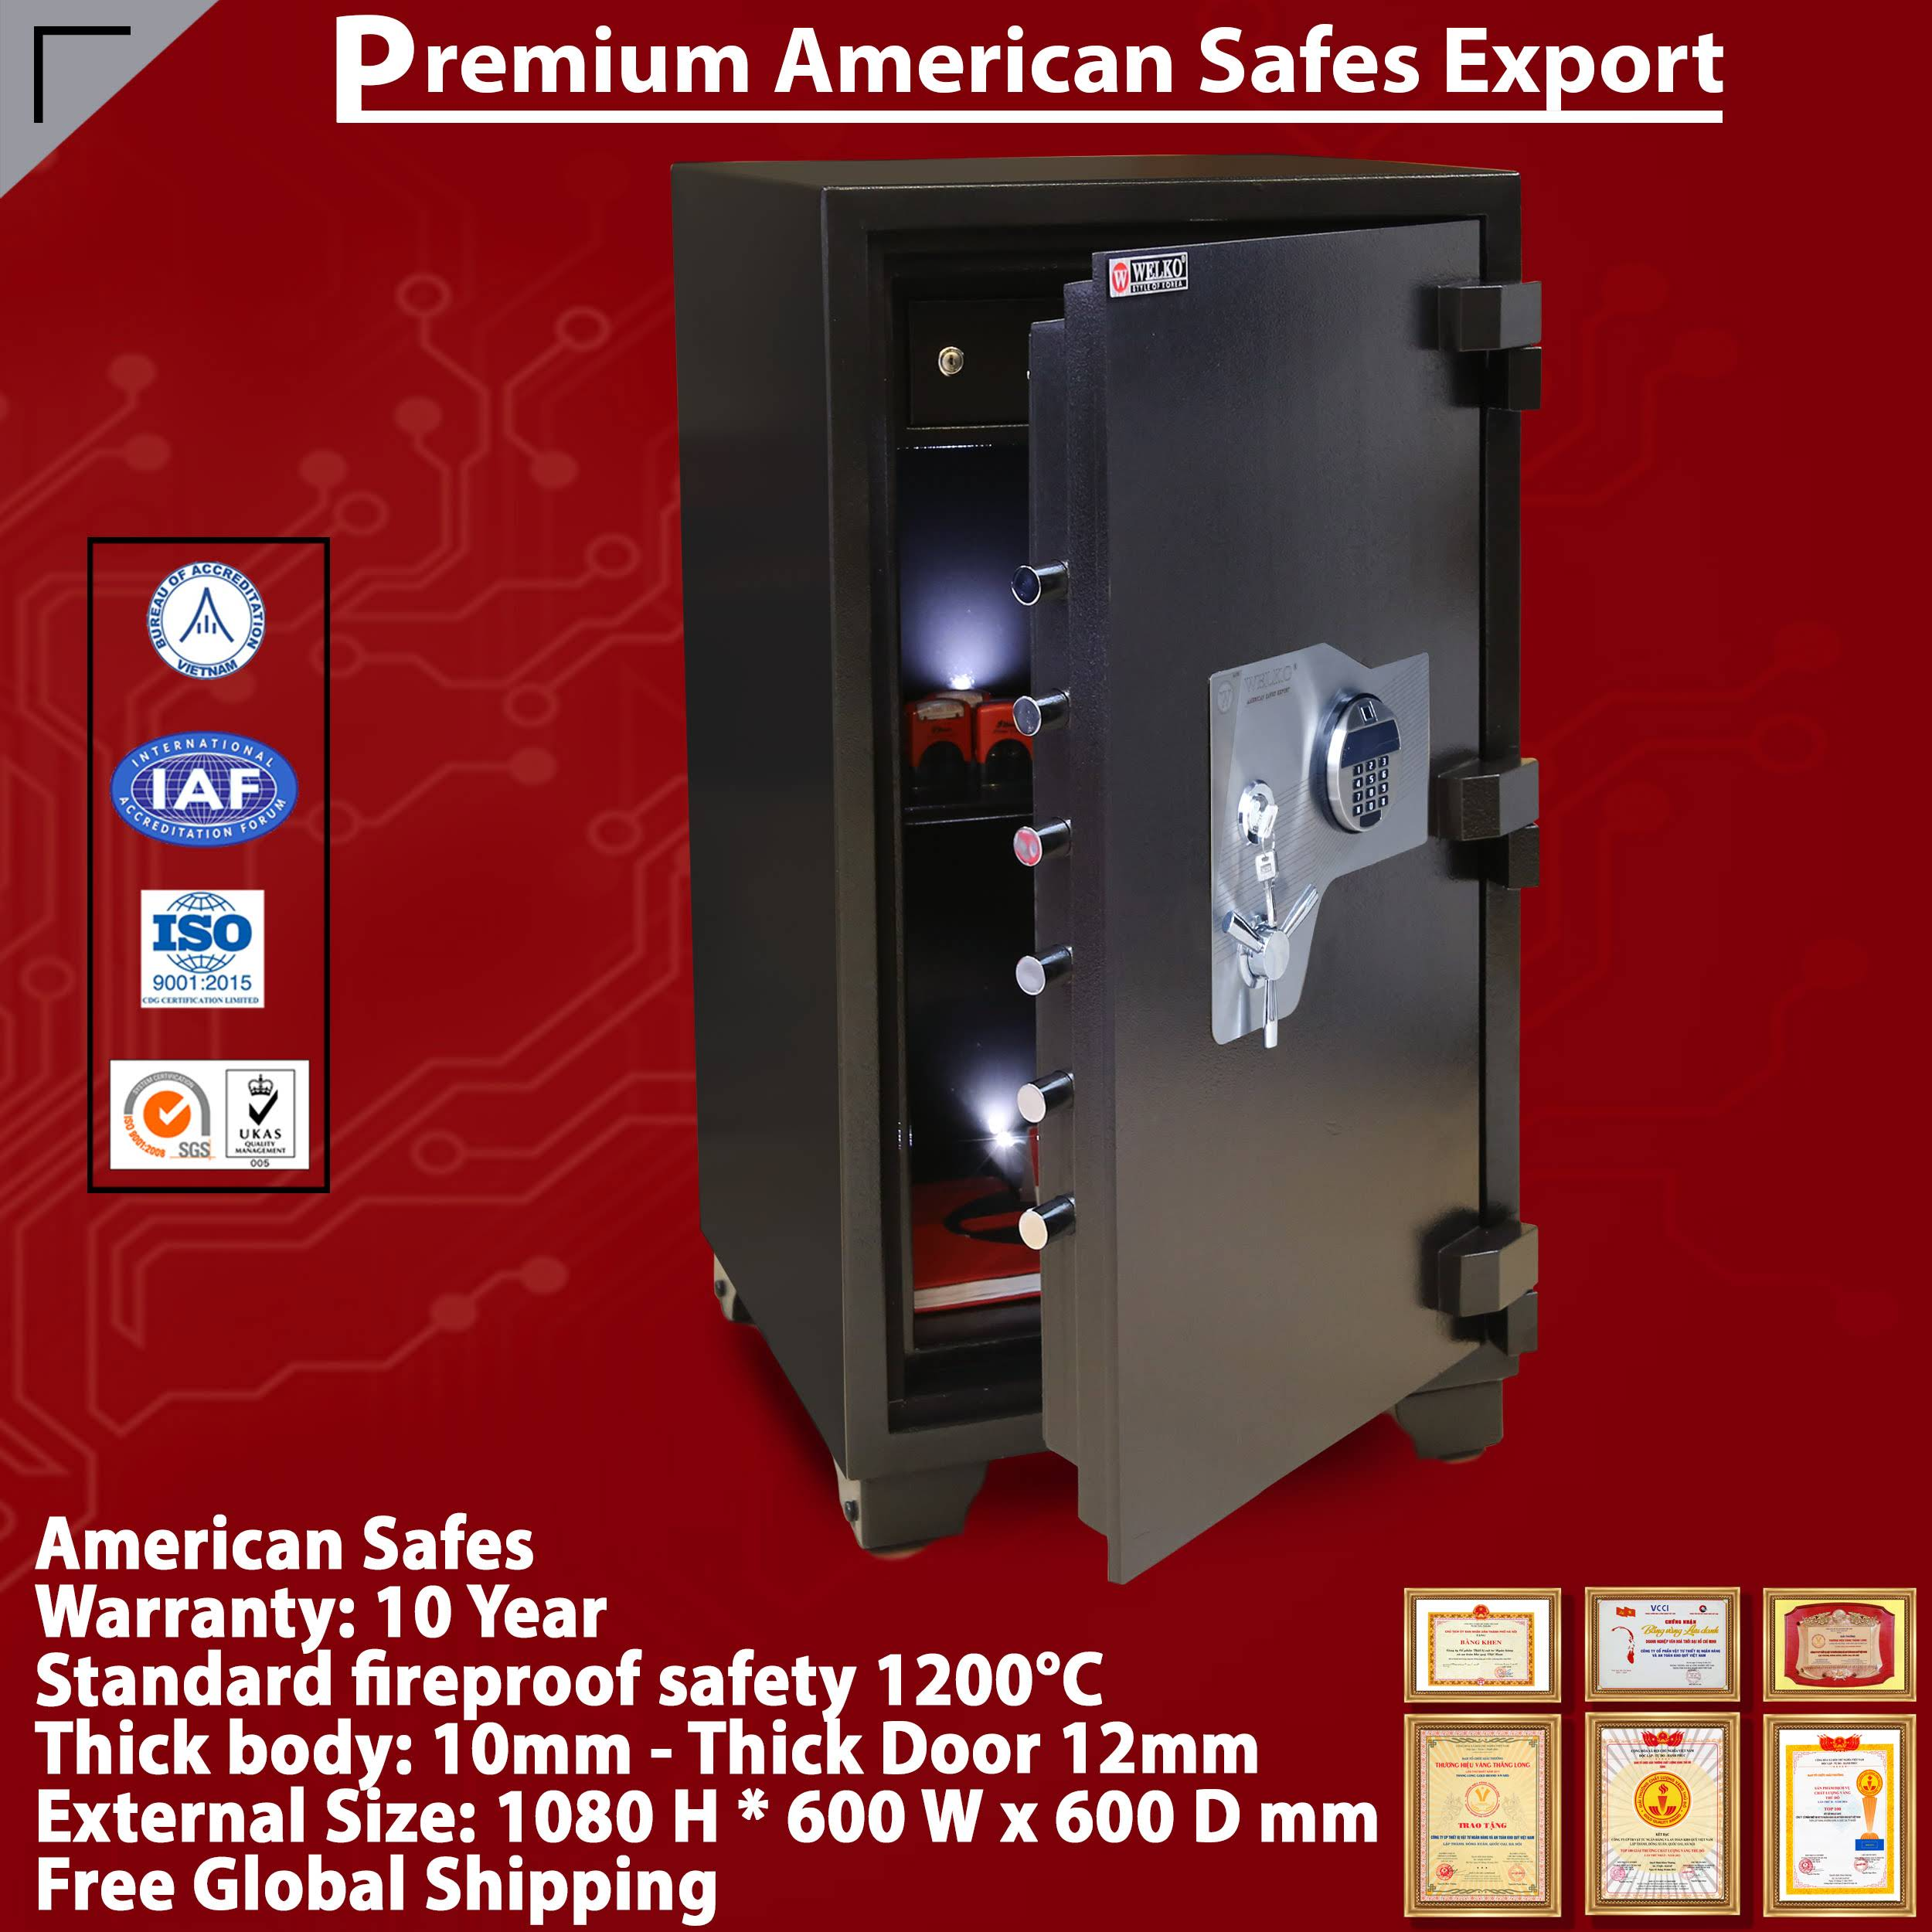 Complete In Specifications Safety And Fingerprint Electronic - Newest design - Newest Anti-theft Technology - From WELKO Safes